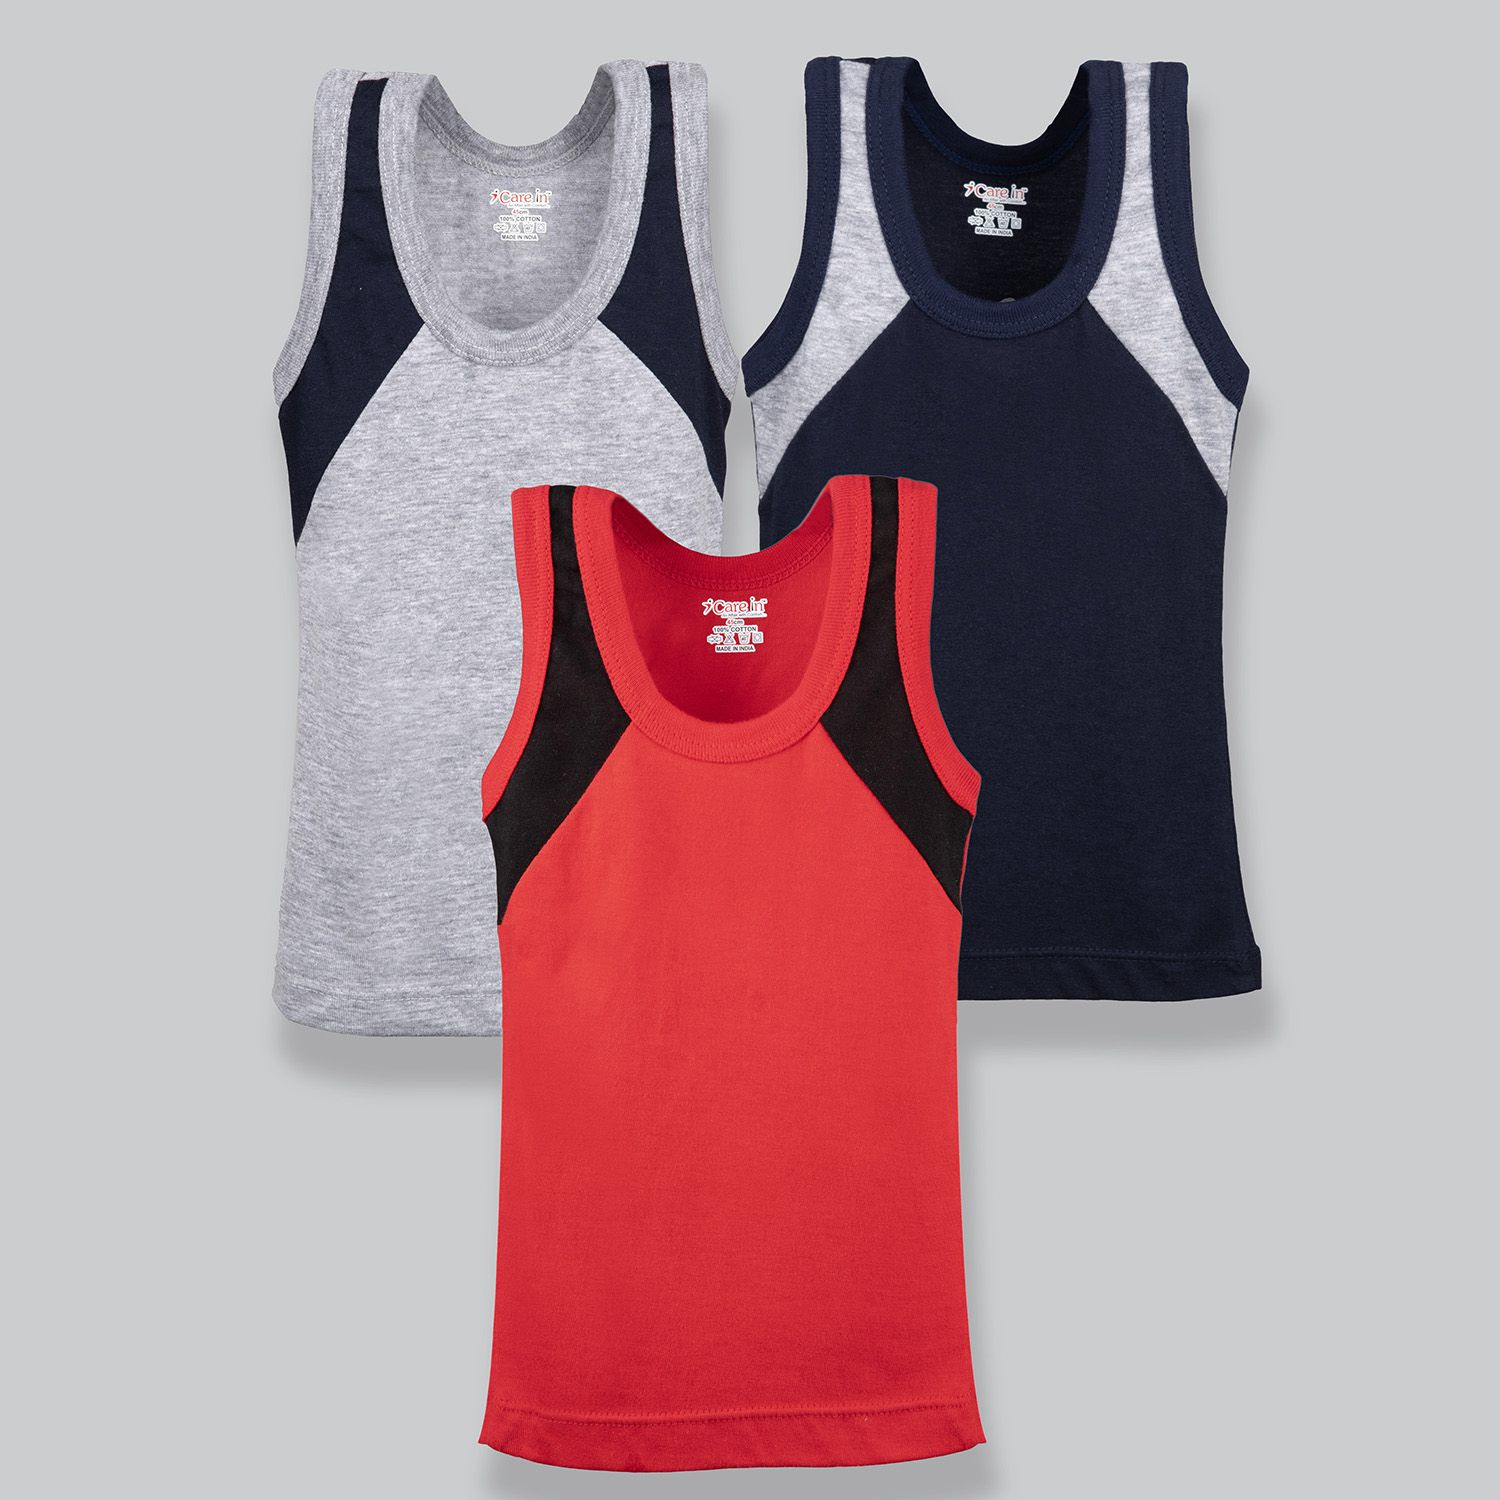 Care in Cotton Round Neck Sleeveless Sando Vest for Infants and Kids - Red, Navy and Millanch Color( Pack of 3)